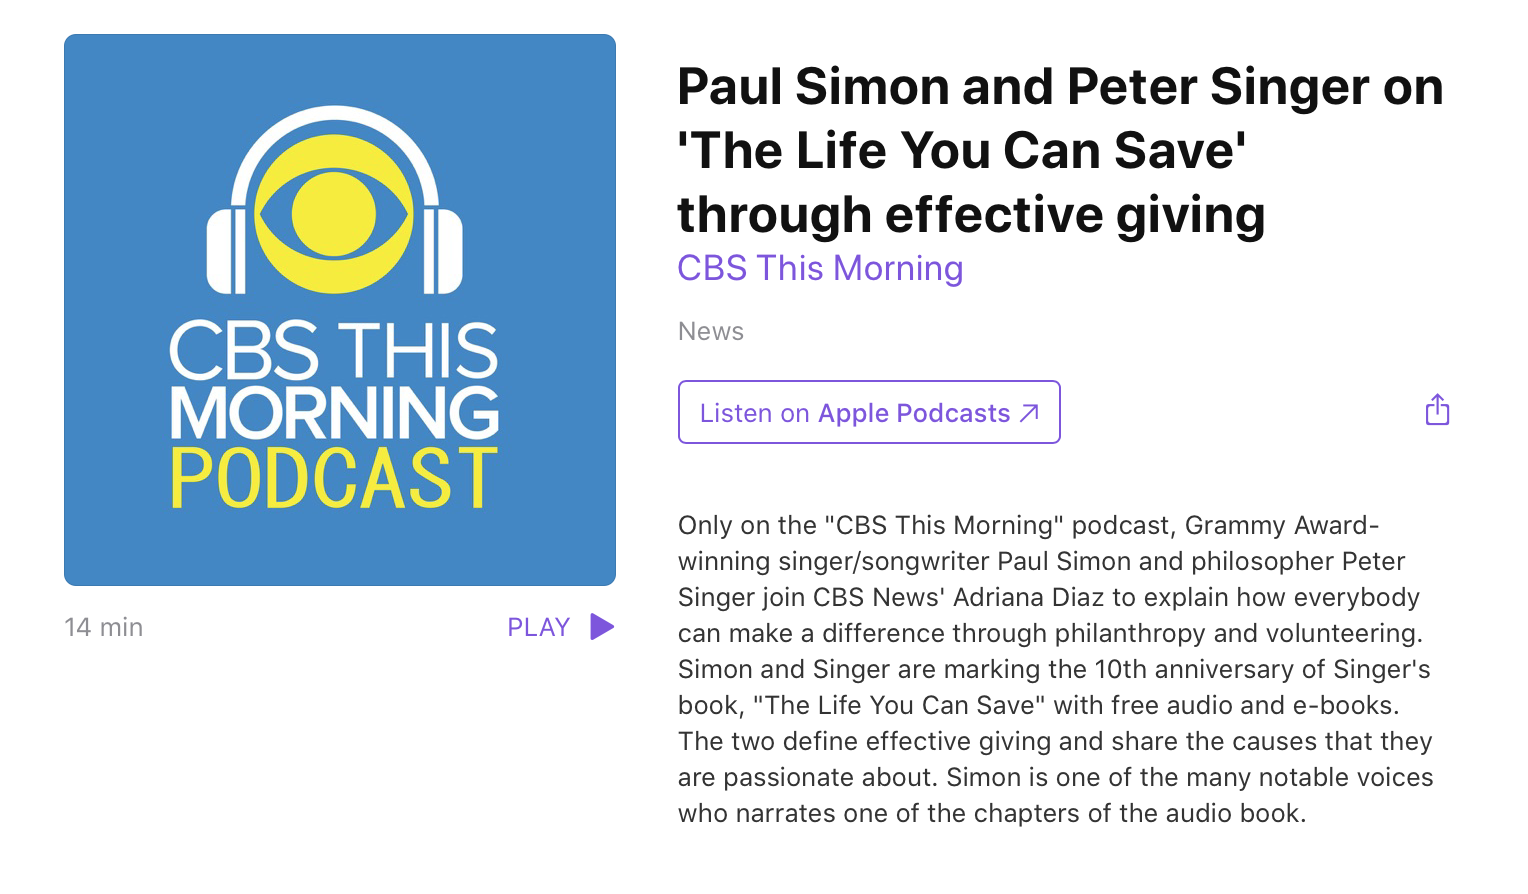 Paul Simon and Peter Singer on 'The Life You Can Save'